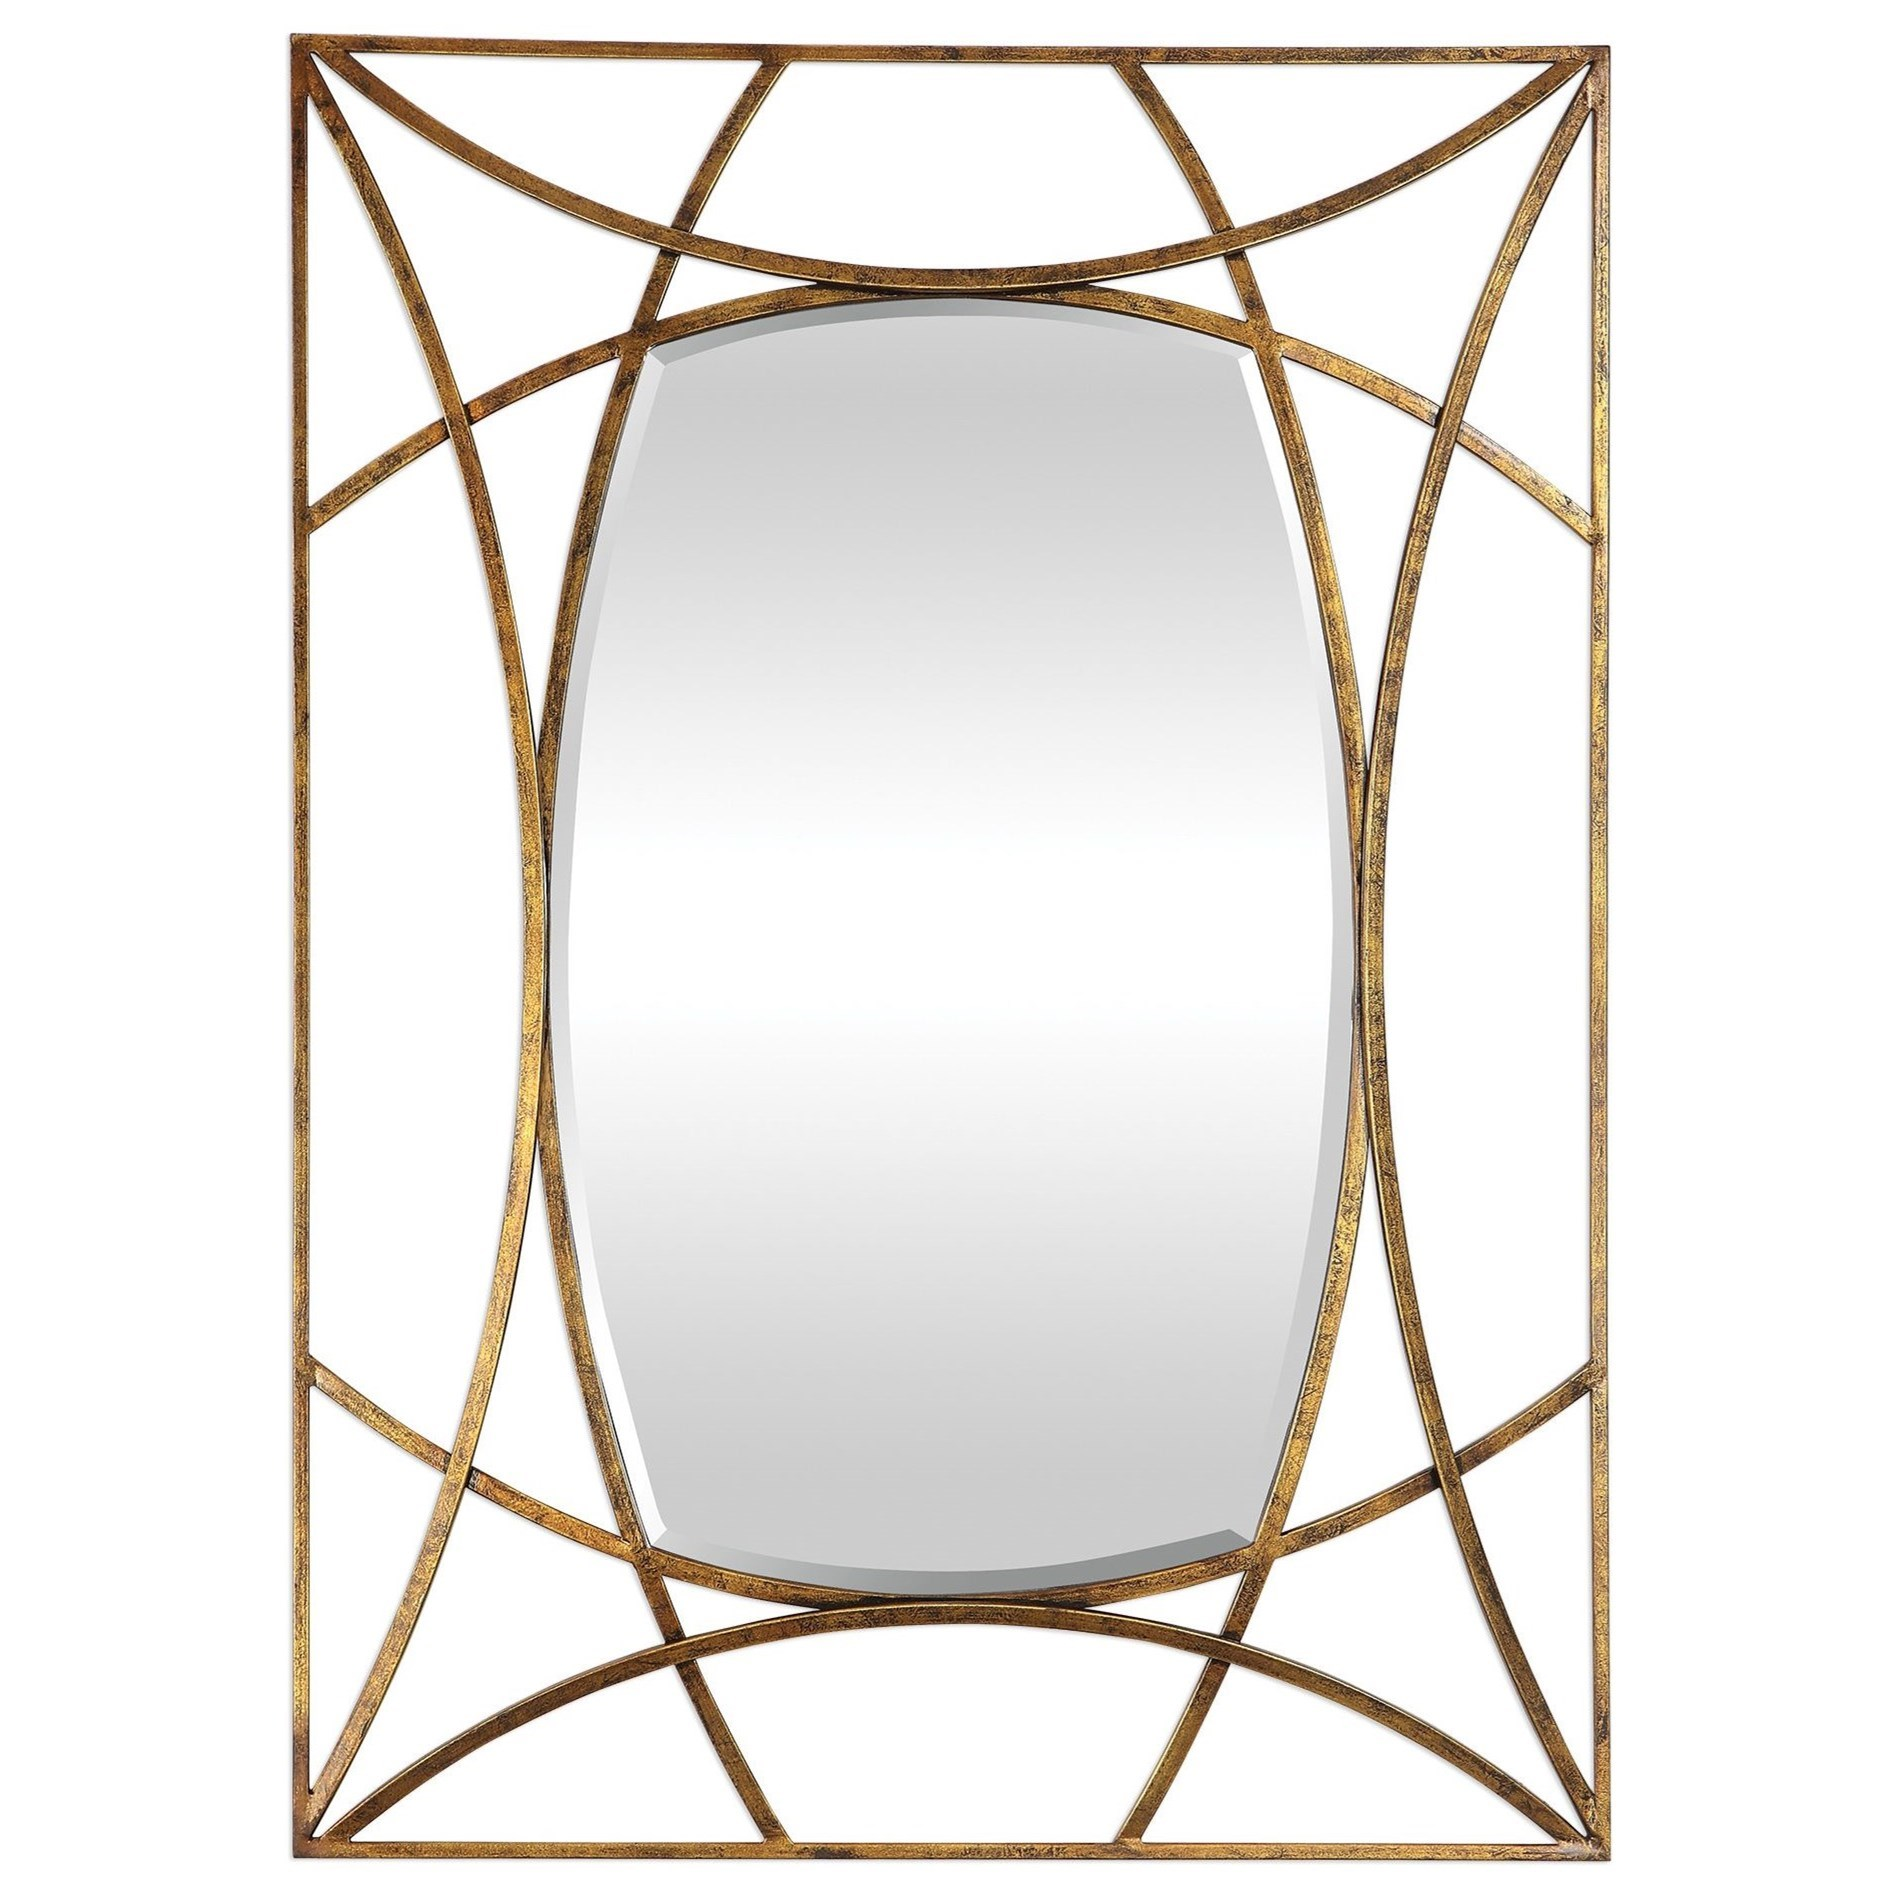 Abreona Metallic Gold Mirror